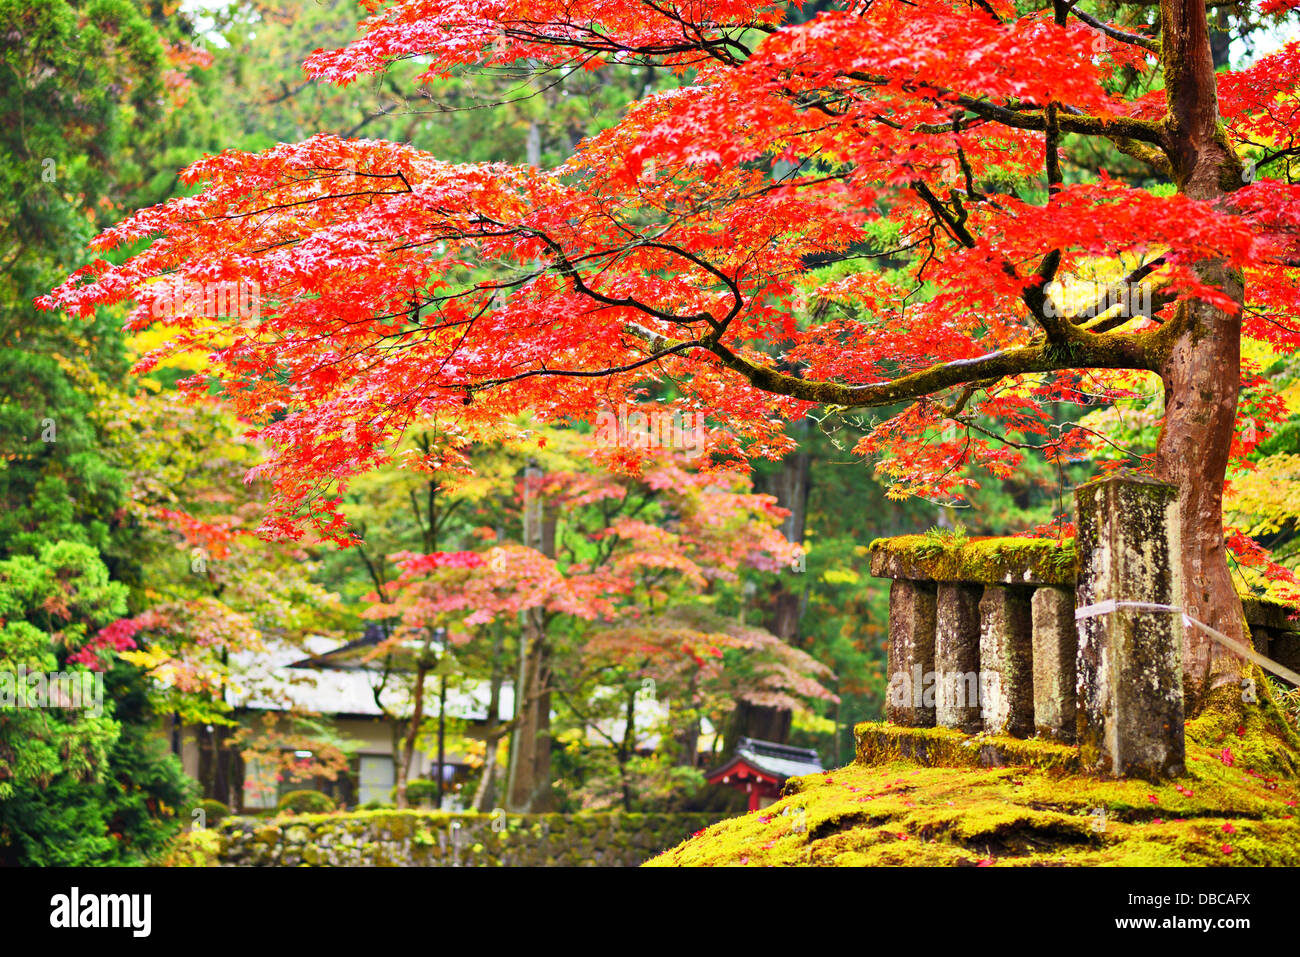 Autumn foliage in Nikko, Japan. - Stock Image